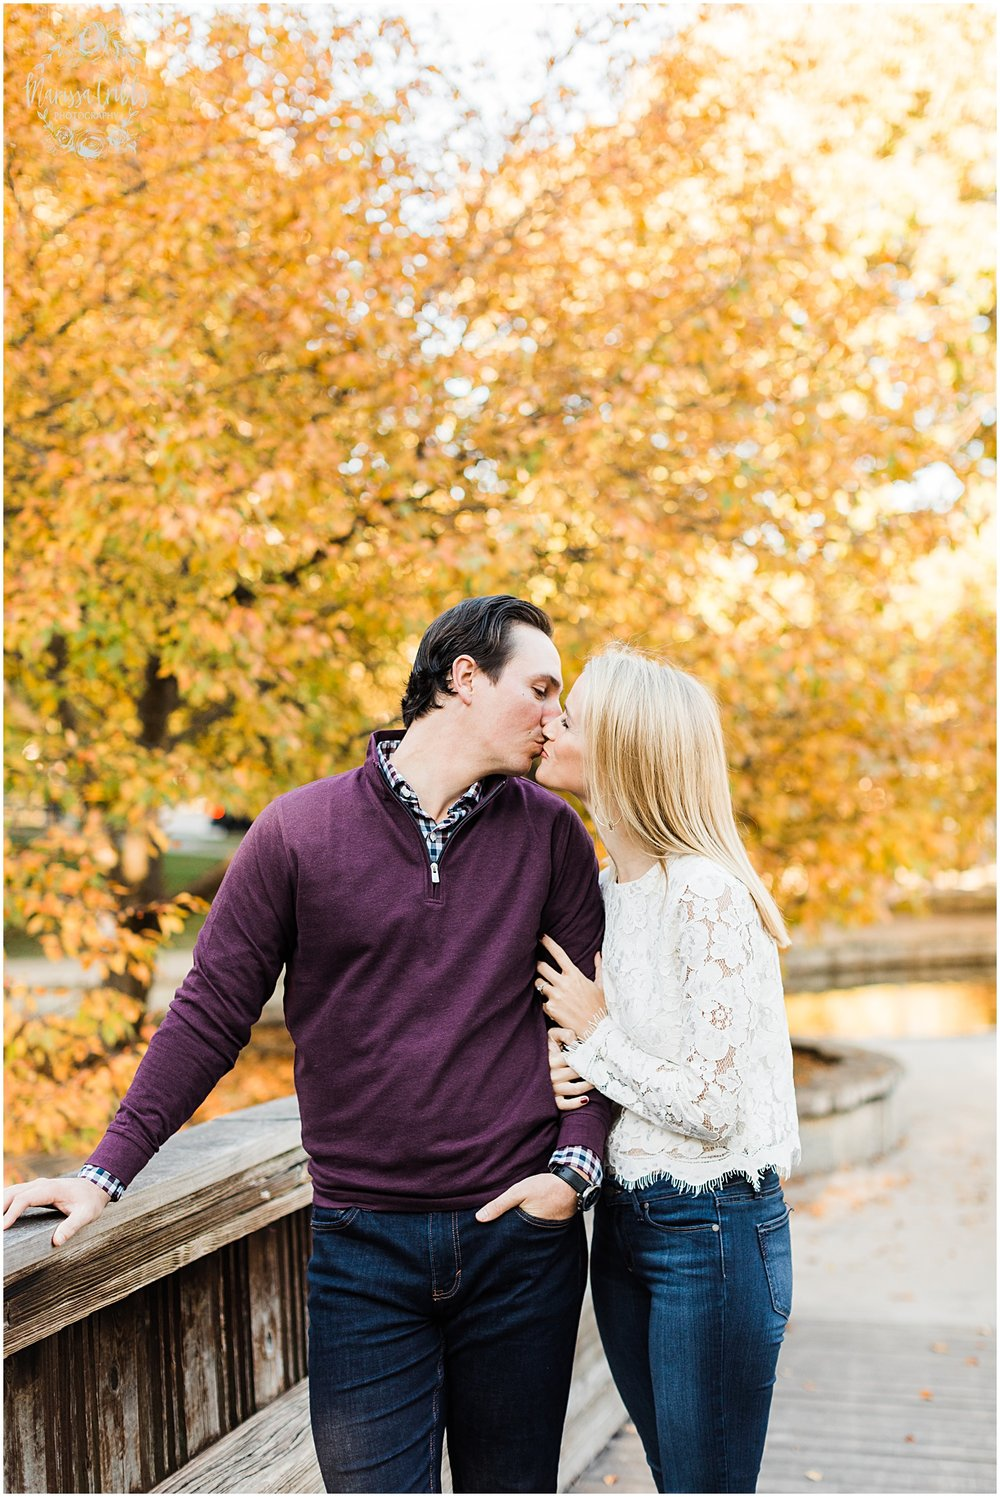 HALEY & CHASE ENGAGED LOOSE PARK & NELSON ATKINS | FALL ENGAGEMENT PHOTOS | MARISSA CRIBBS PHOTOGRAPHY_6850.jpg